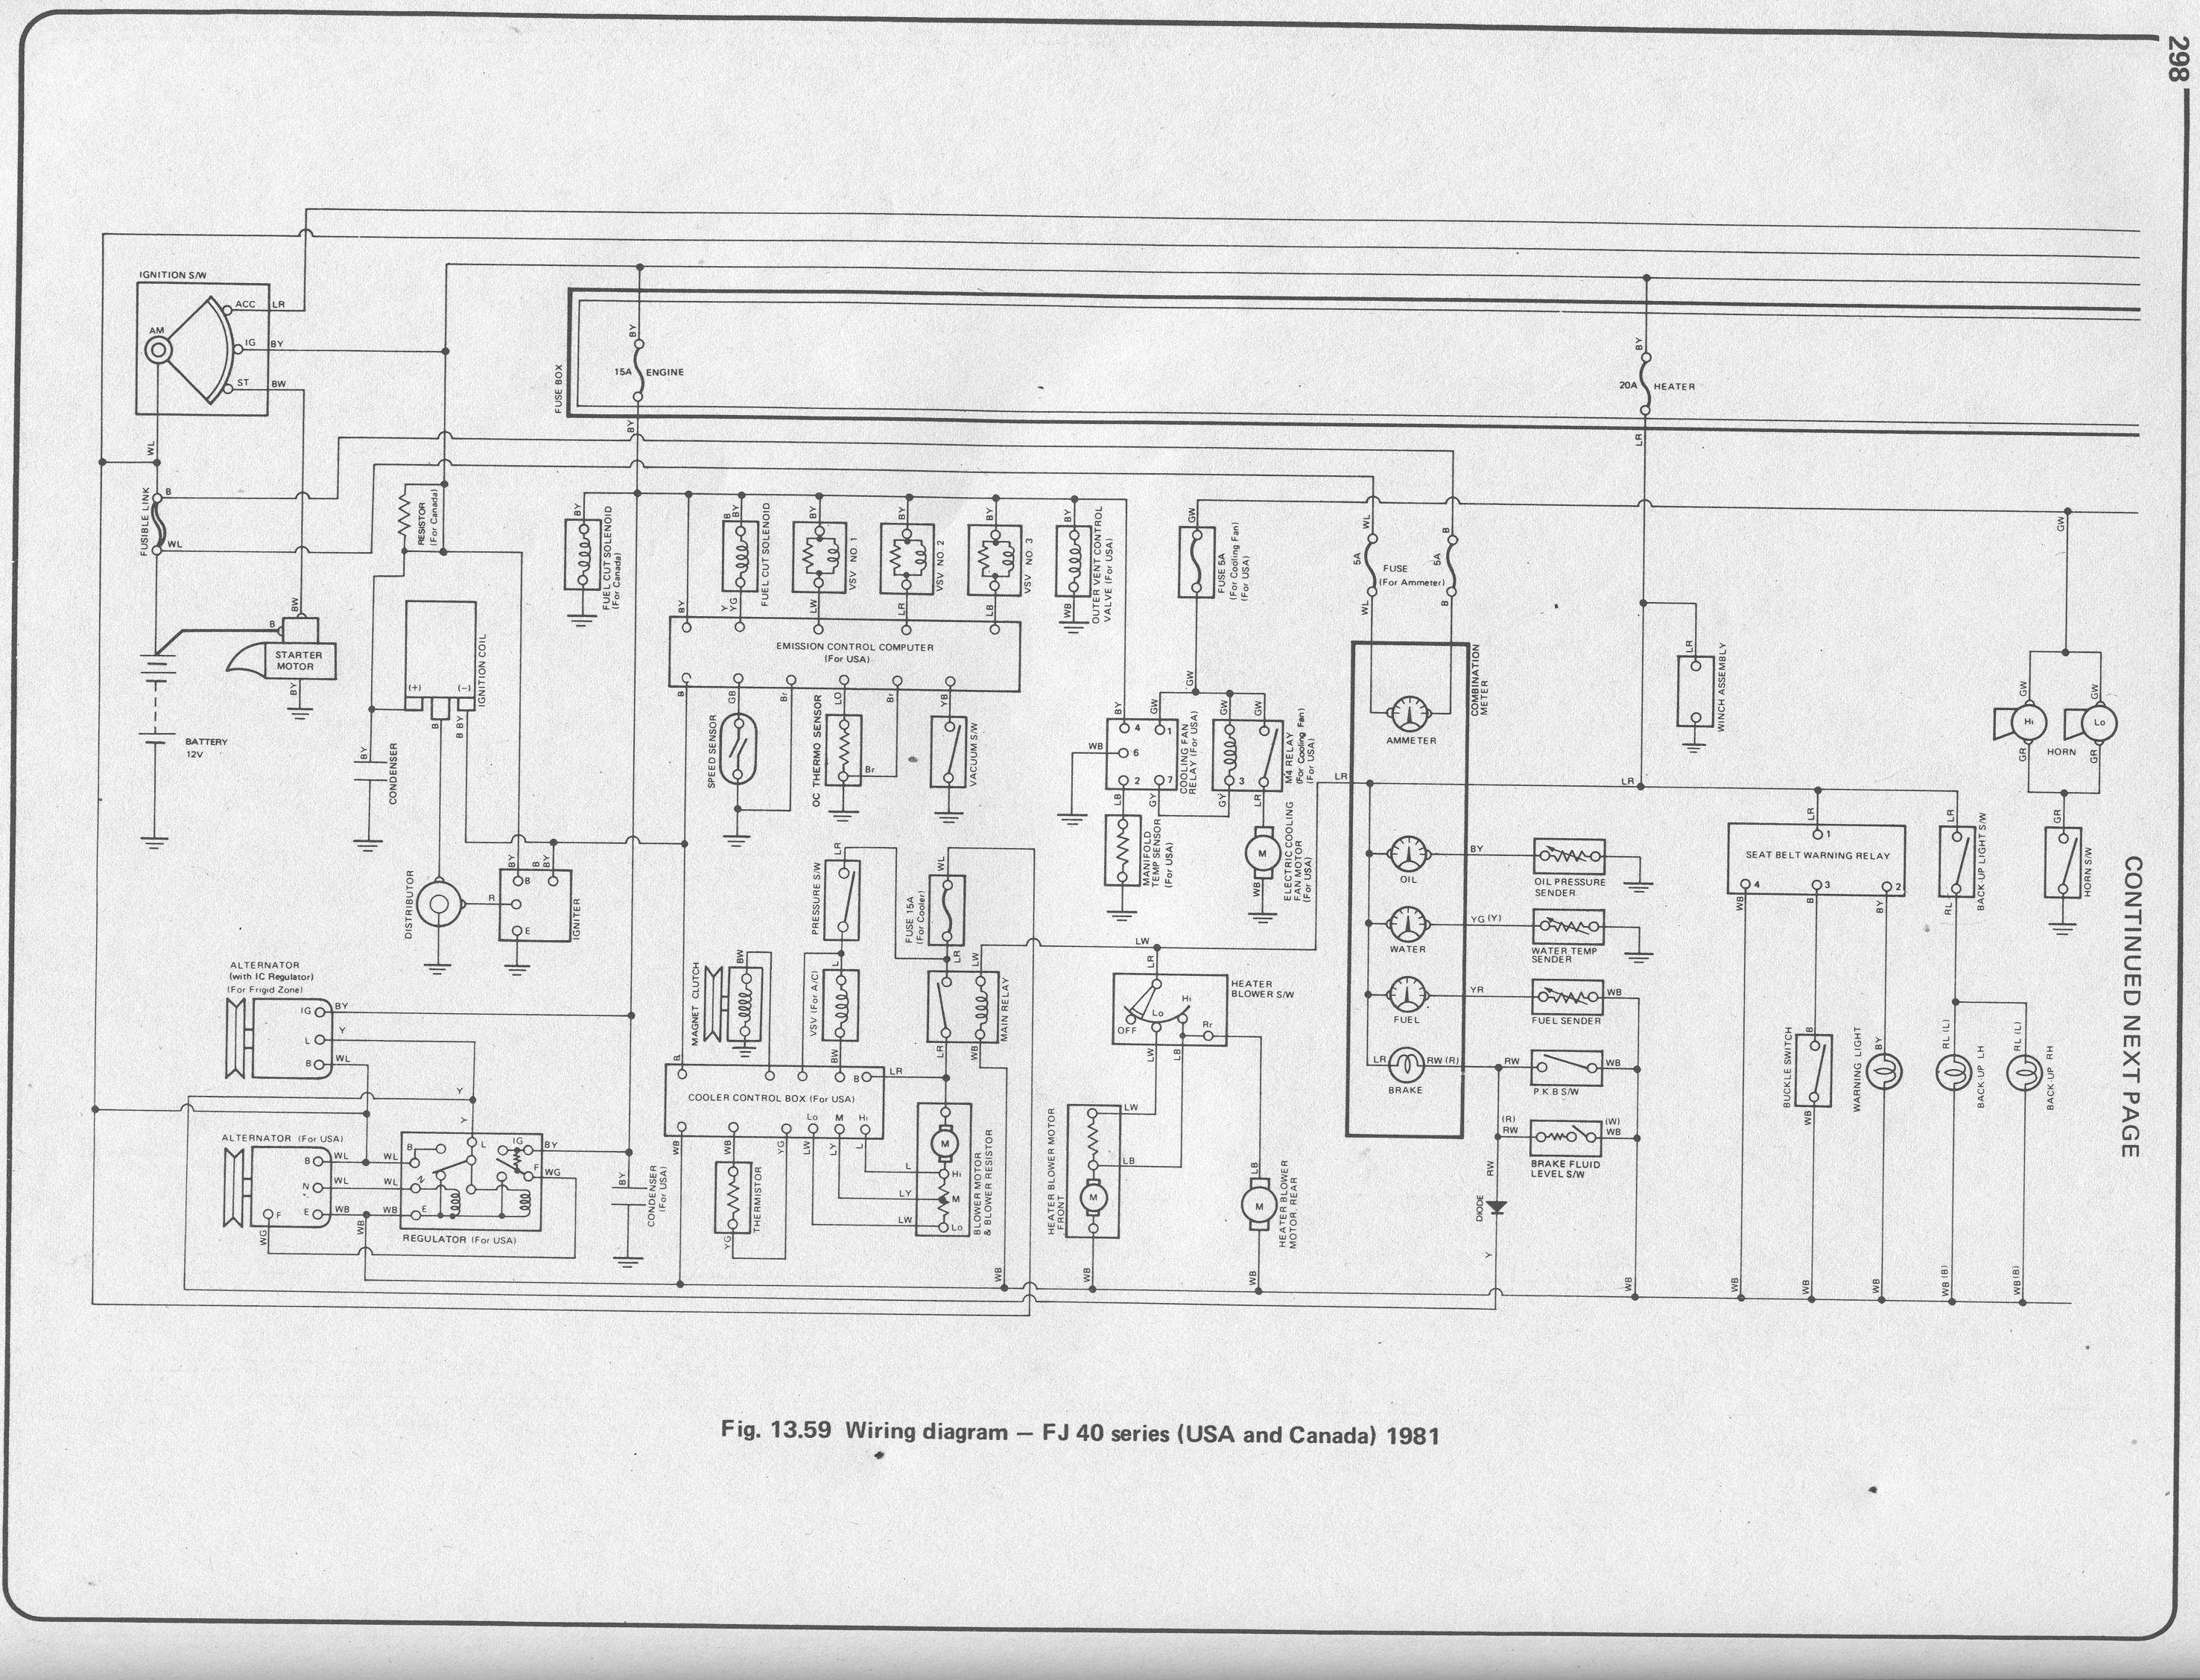 1979 Holiday Rambler Wiring Diagram Detailed Schematics Duo Therm Mobile Home Furnace 1983 Rv Wire Diagrams Honda